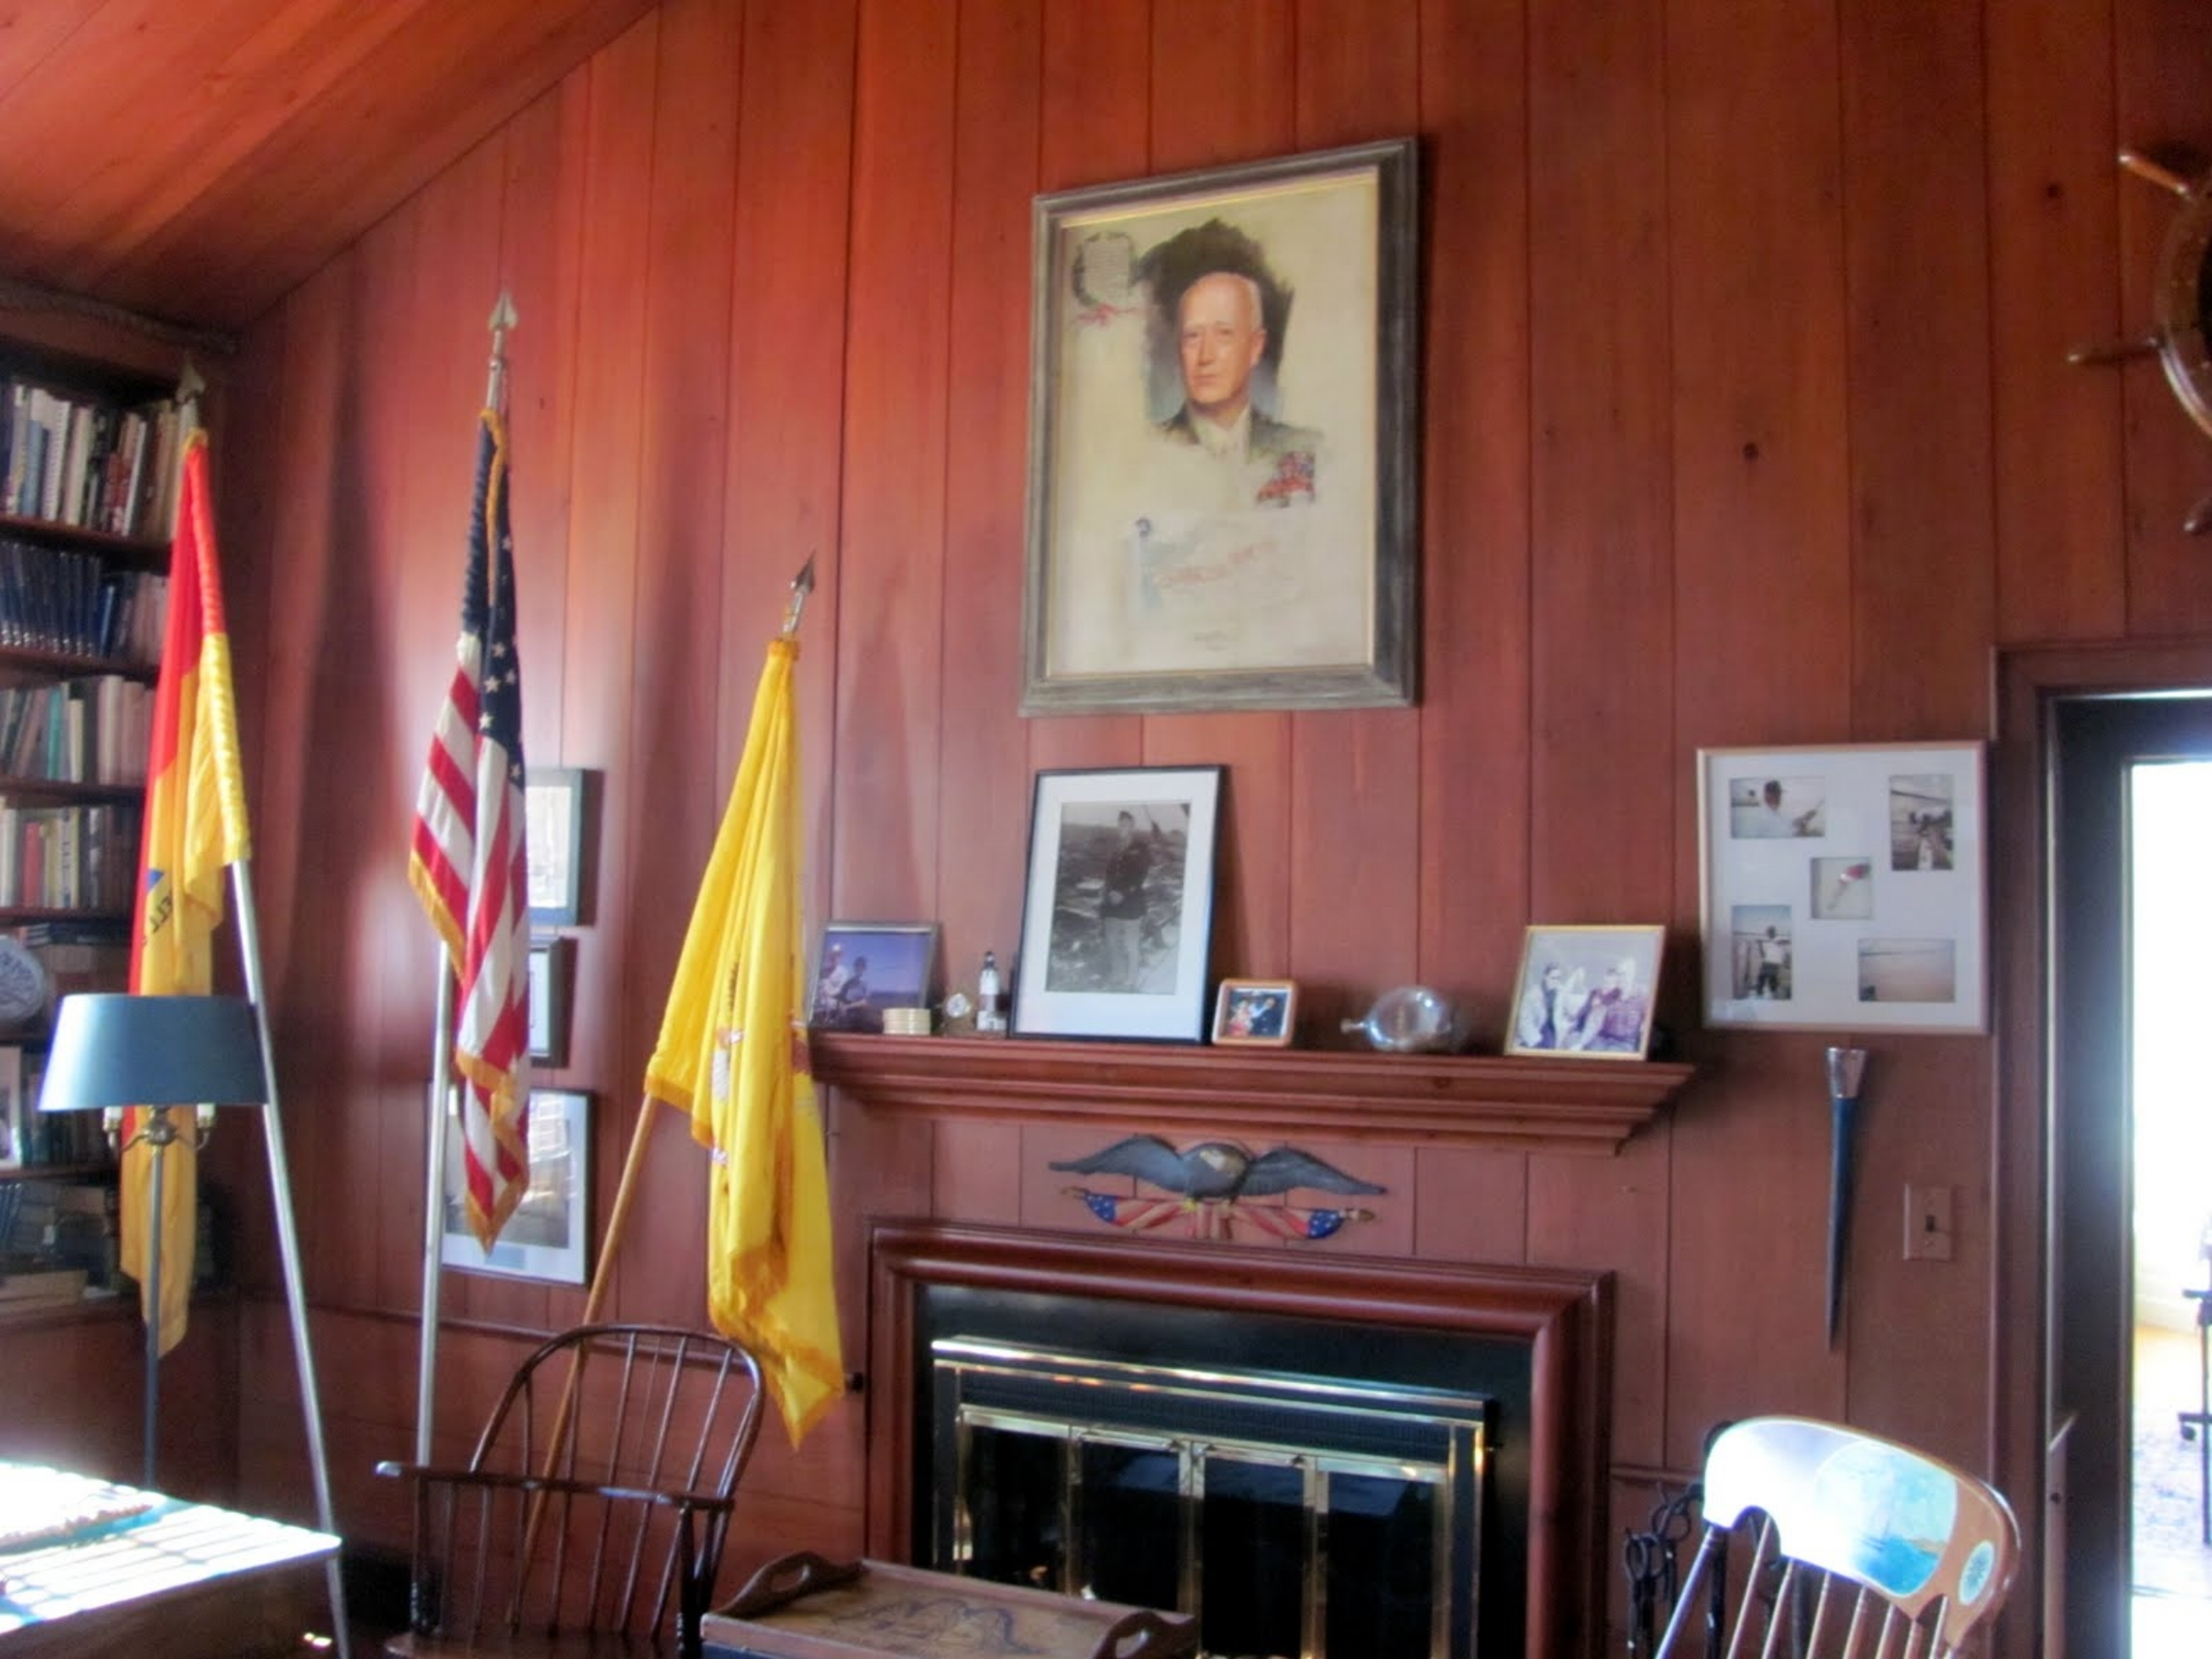 General Patton's Library